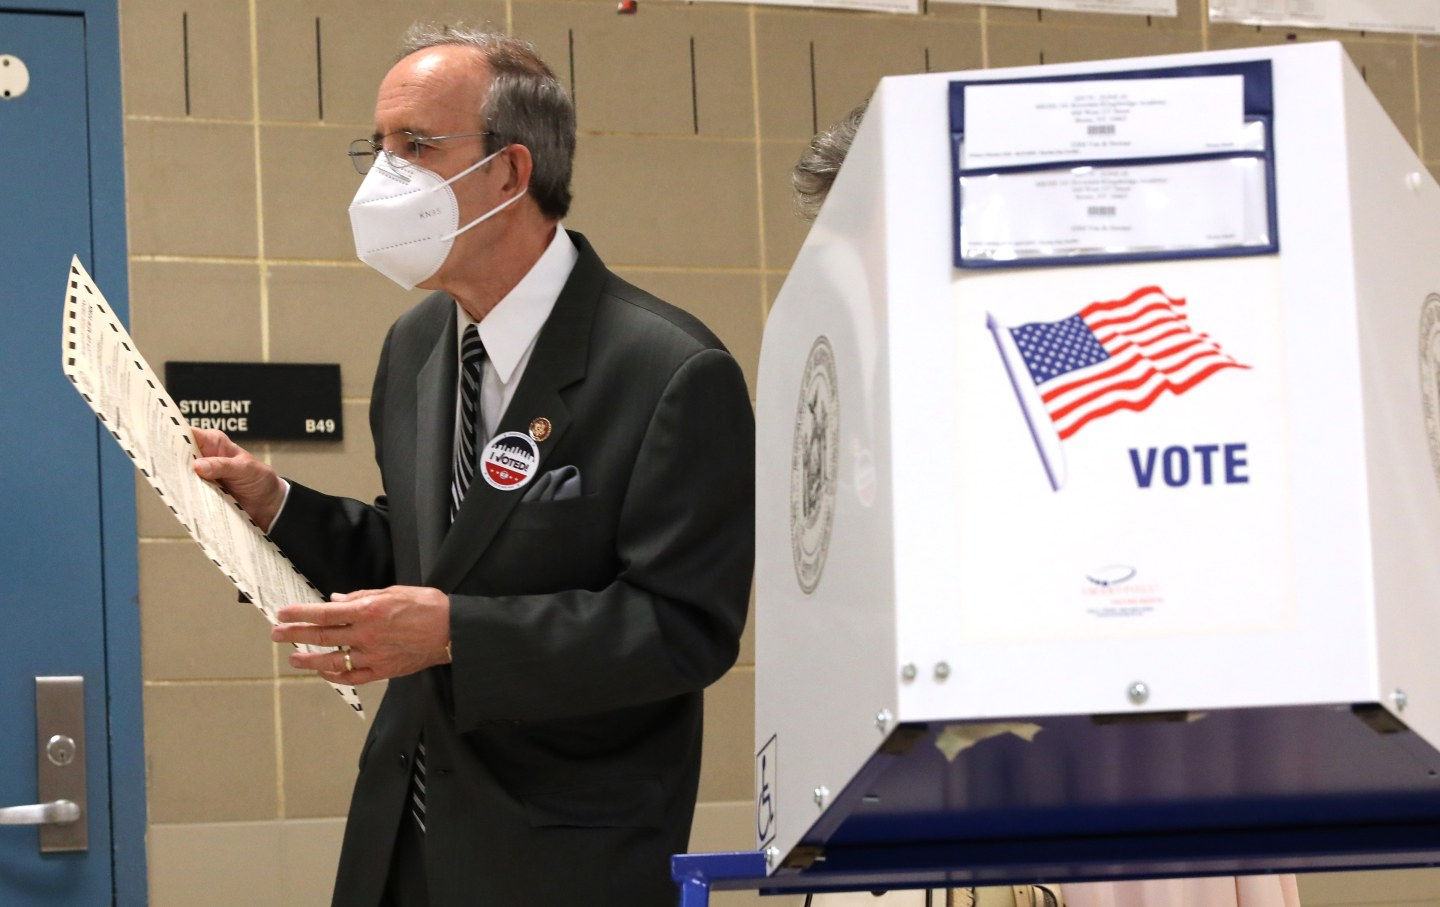 Eliot Engel walks past a voting booth